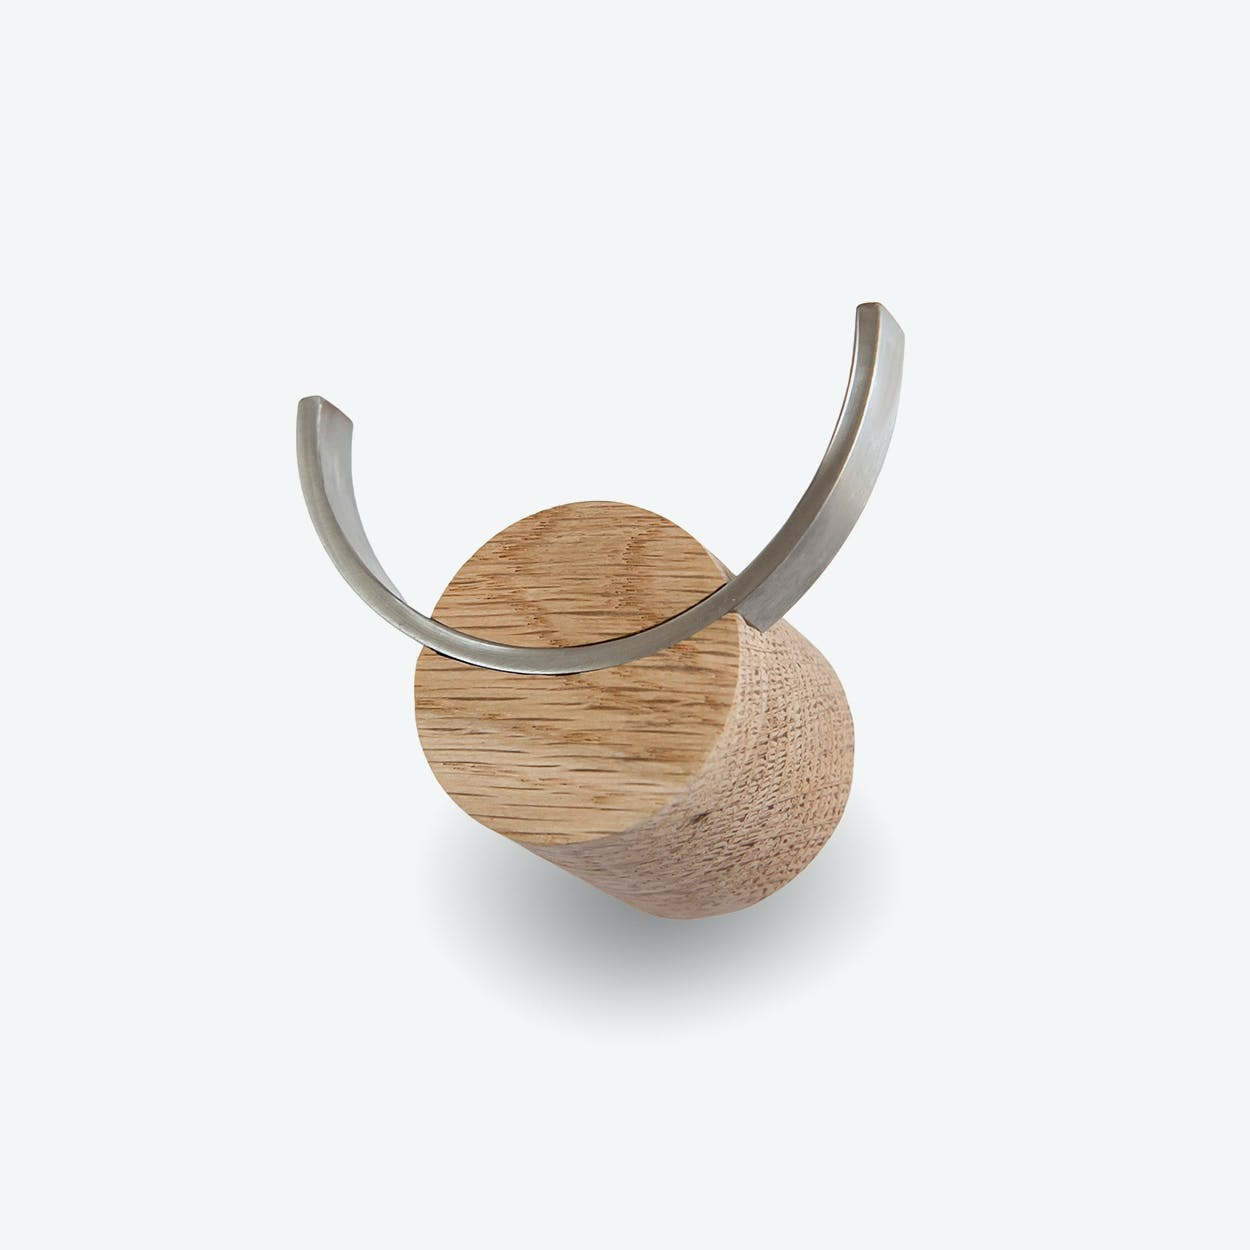 Deer Hook I Deer in Oak Wood/Natural (Ø:4cm)